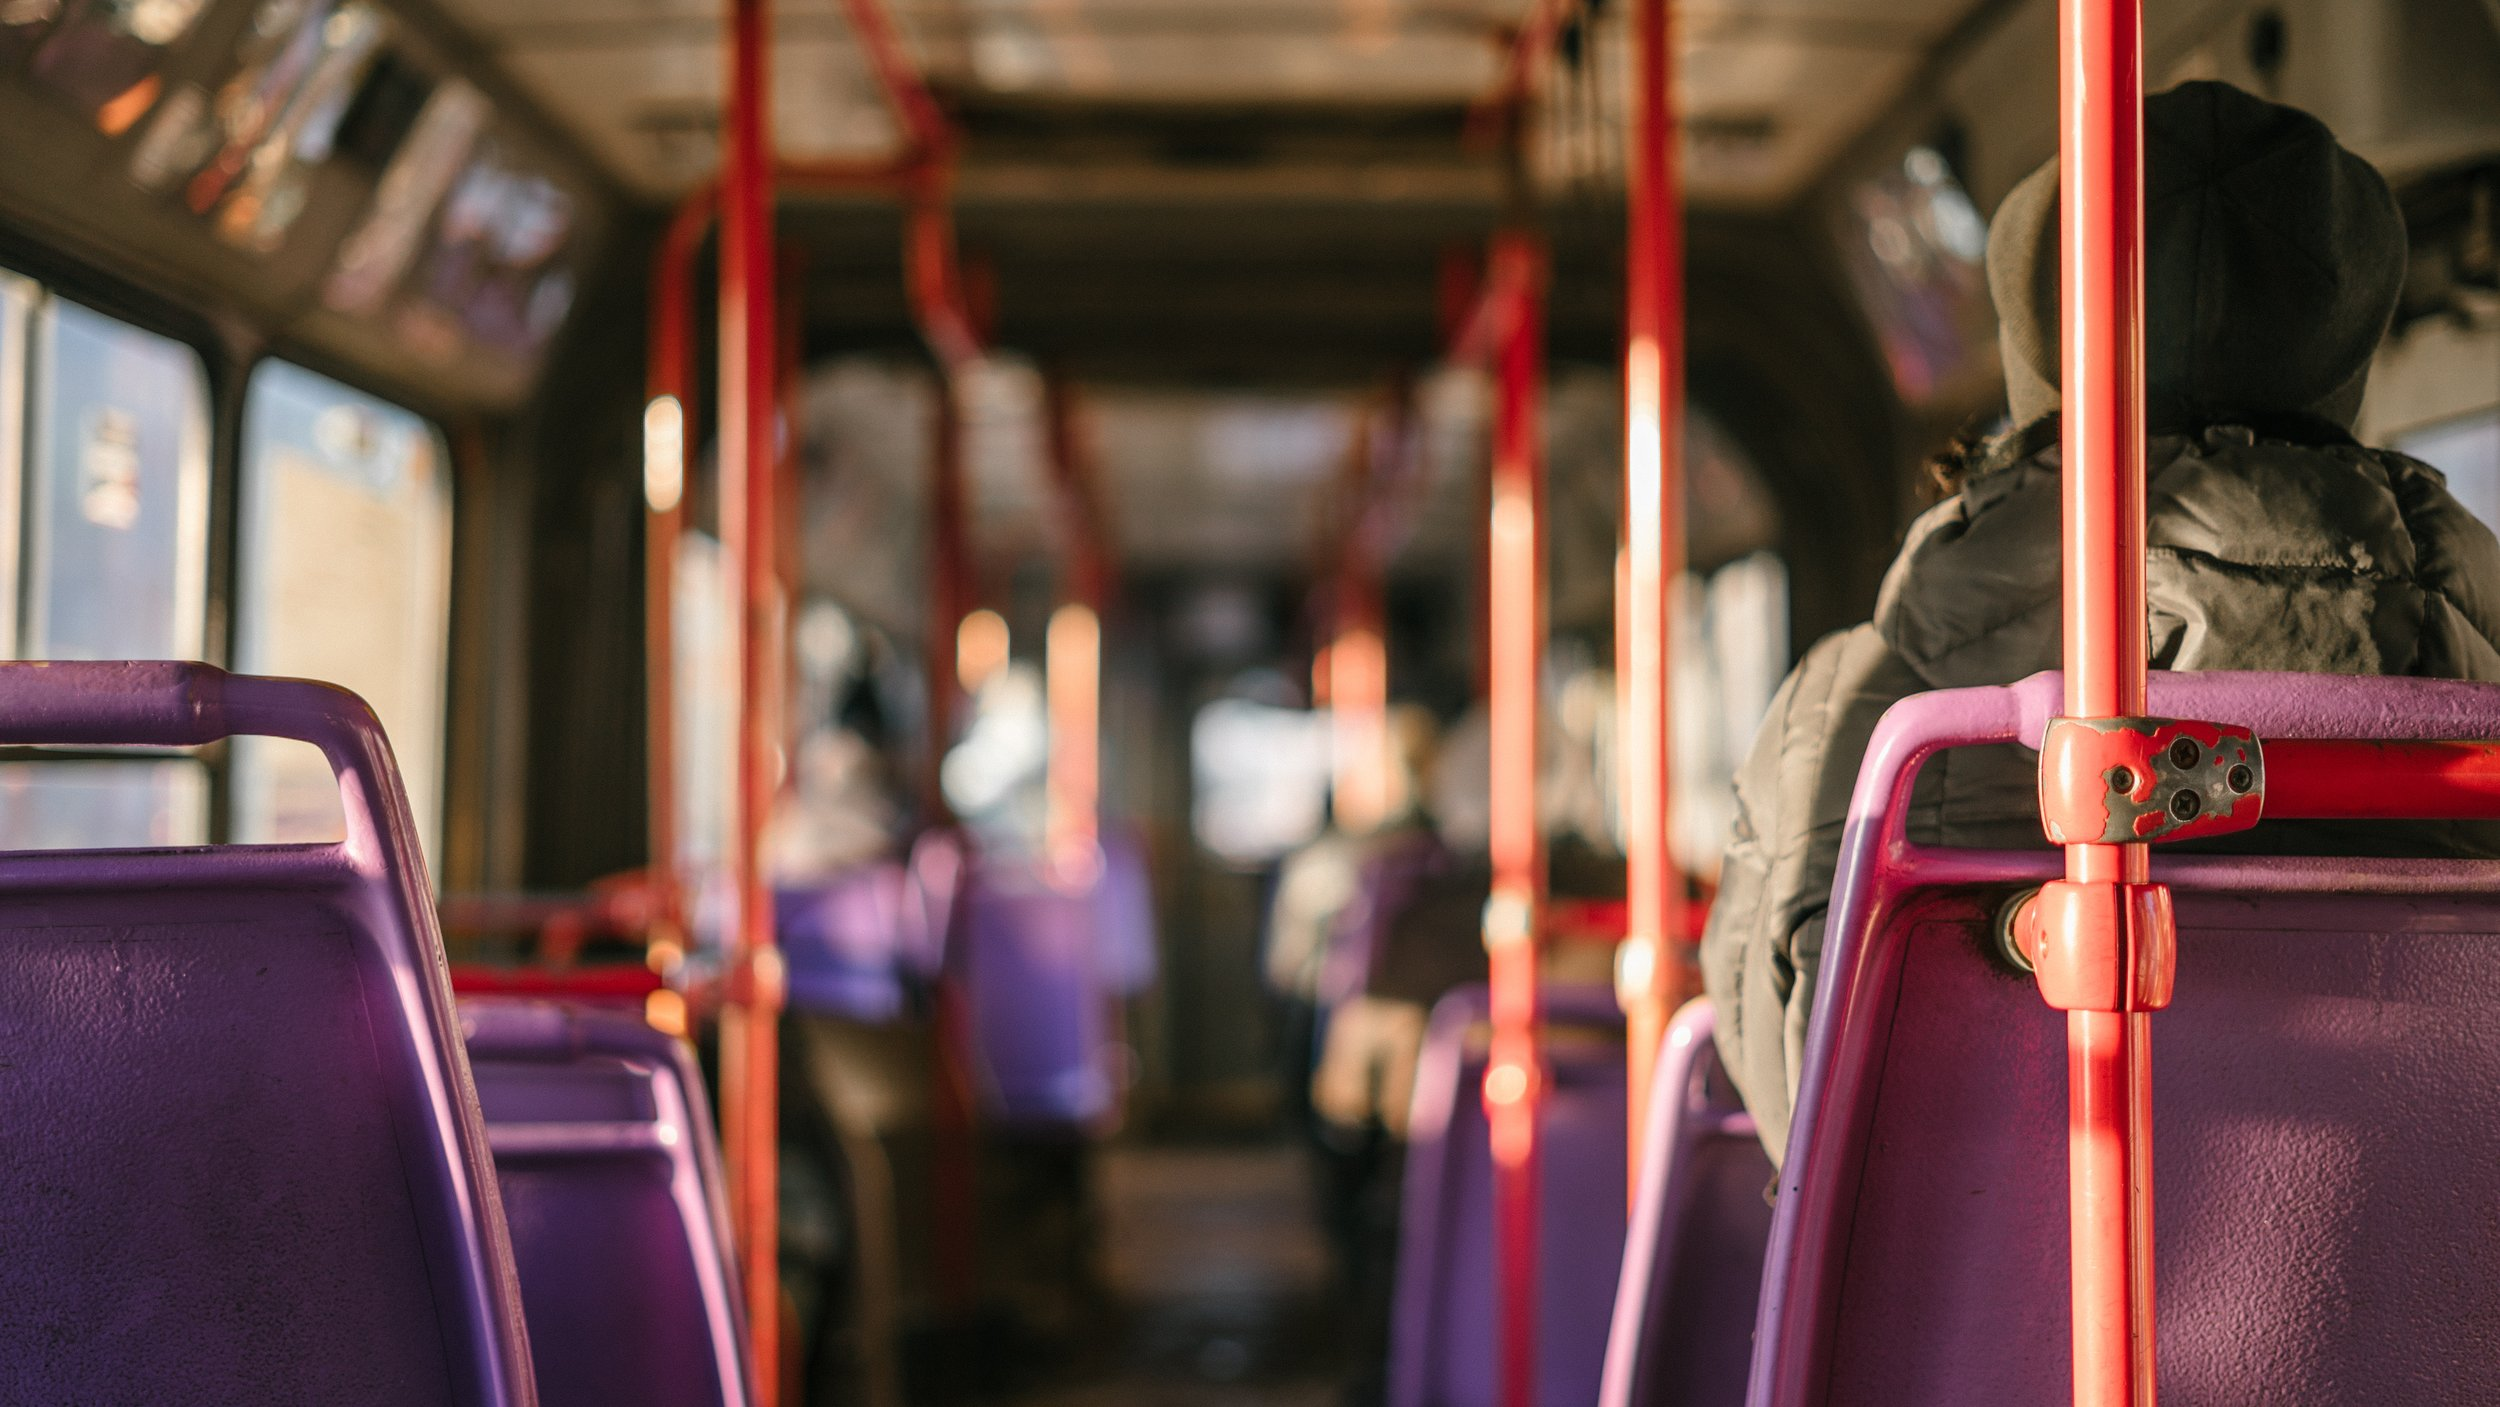 Use your commute to practice mindfulness or meditate -